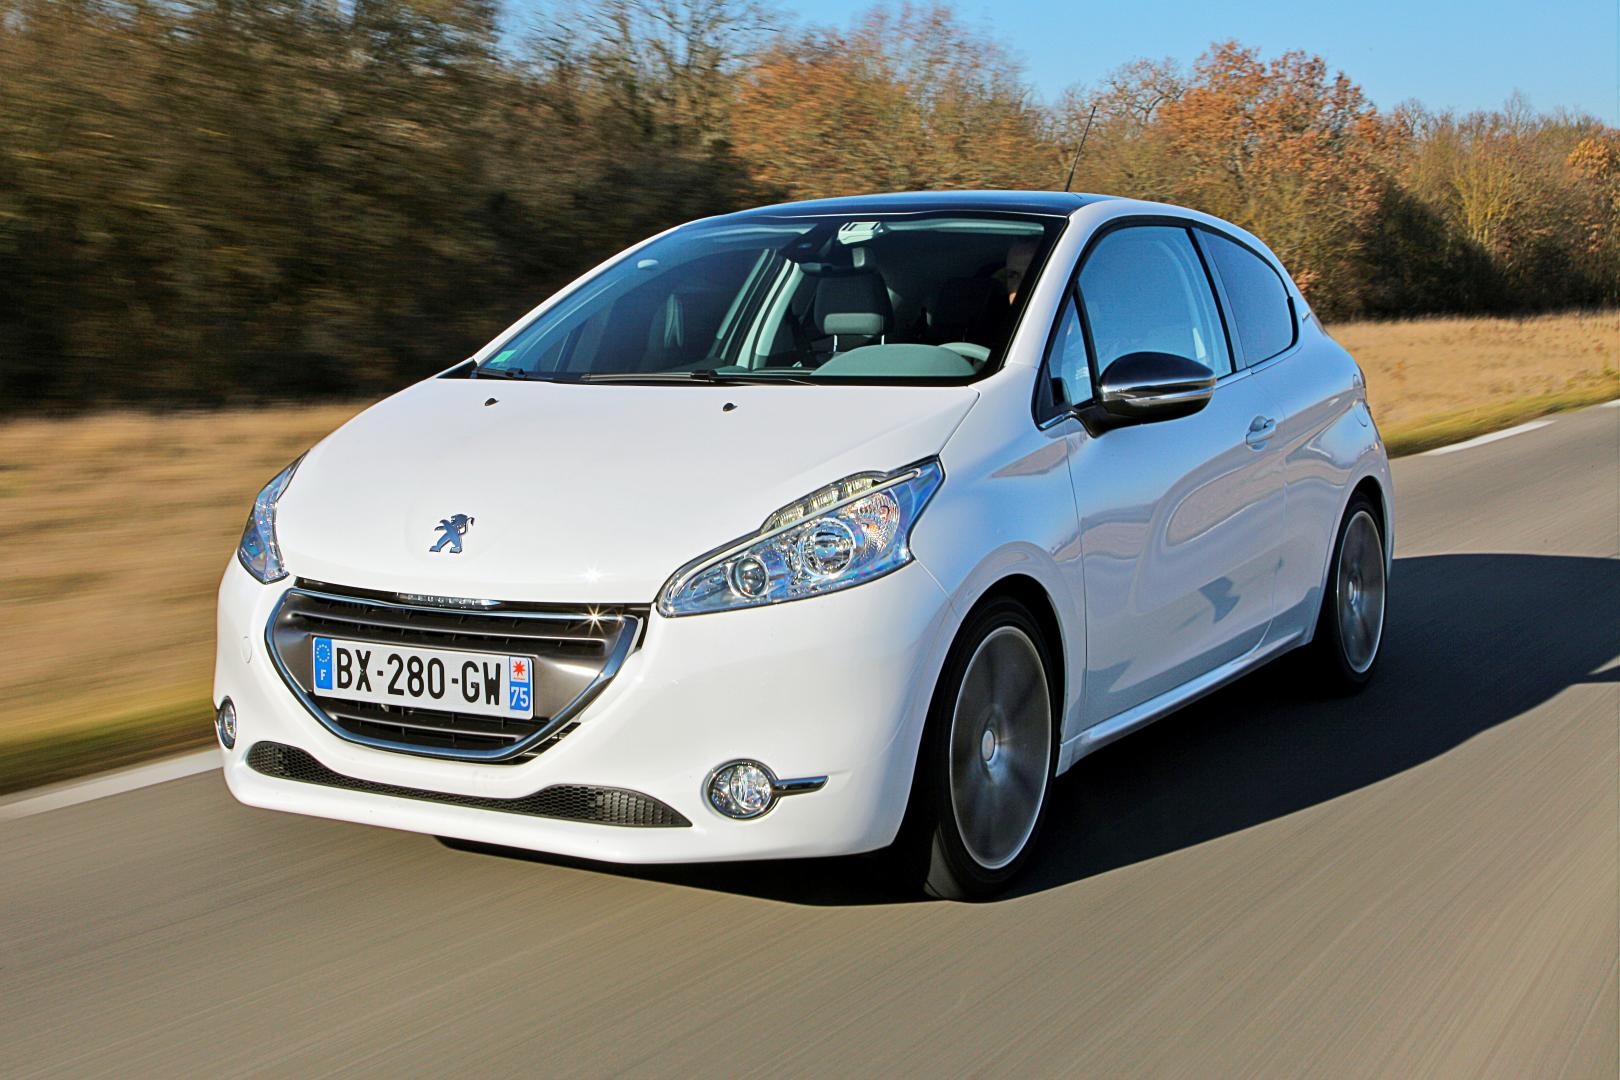 peugeot 208 1 6 e hdi test en specificaties topgear nederland. Black Bedroom Furniture Sets. Home Design Ideas